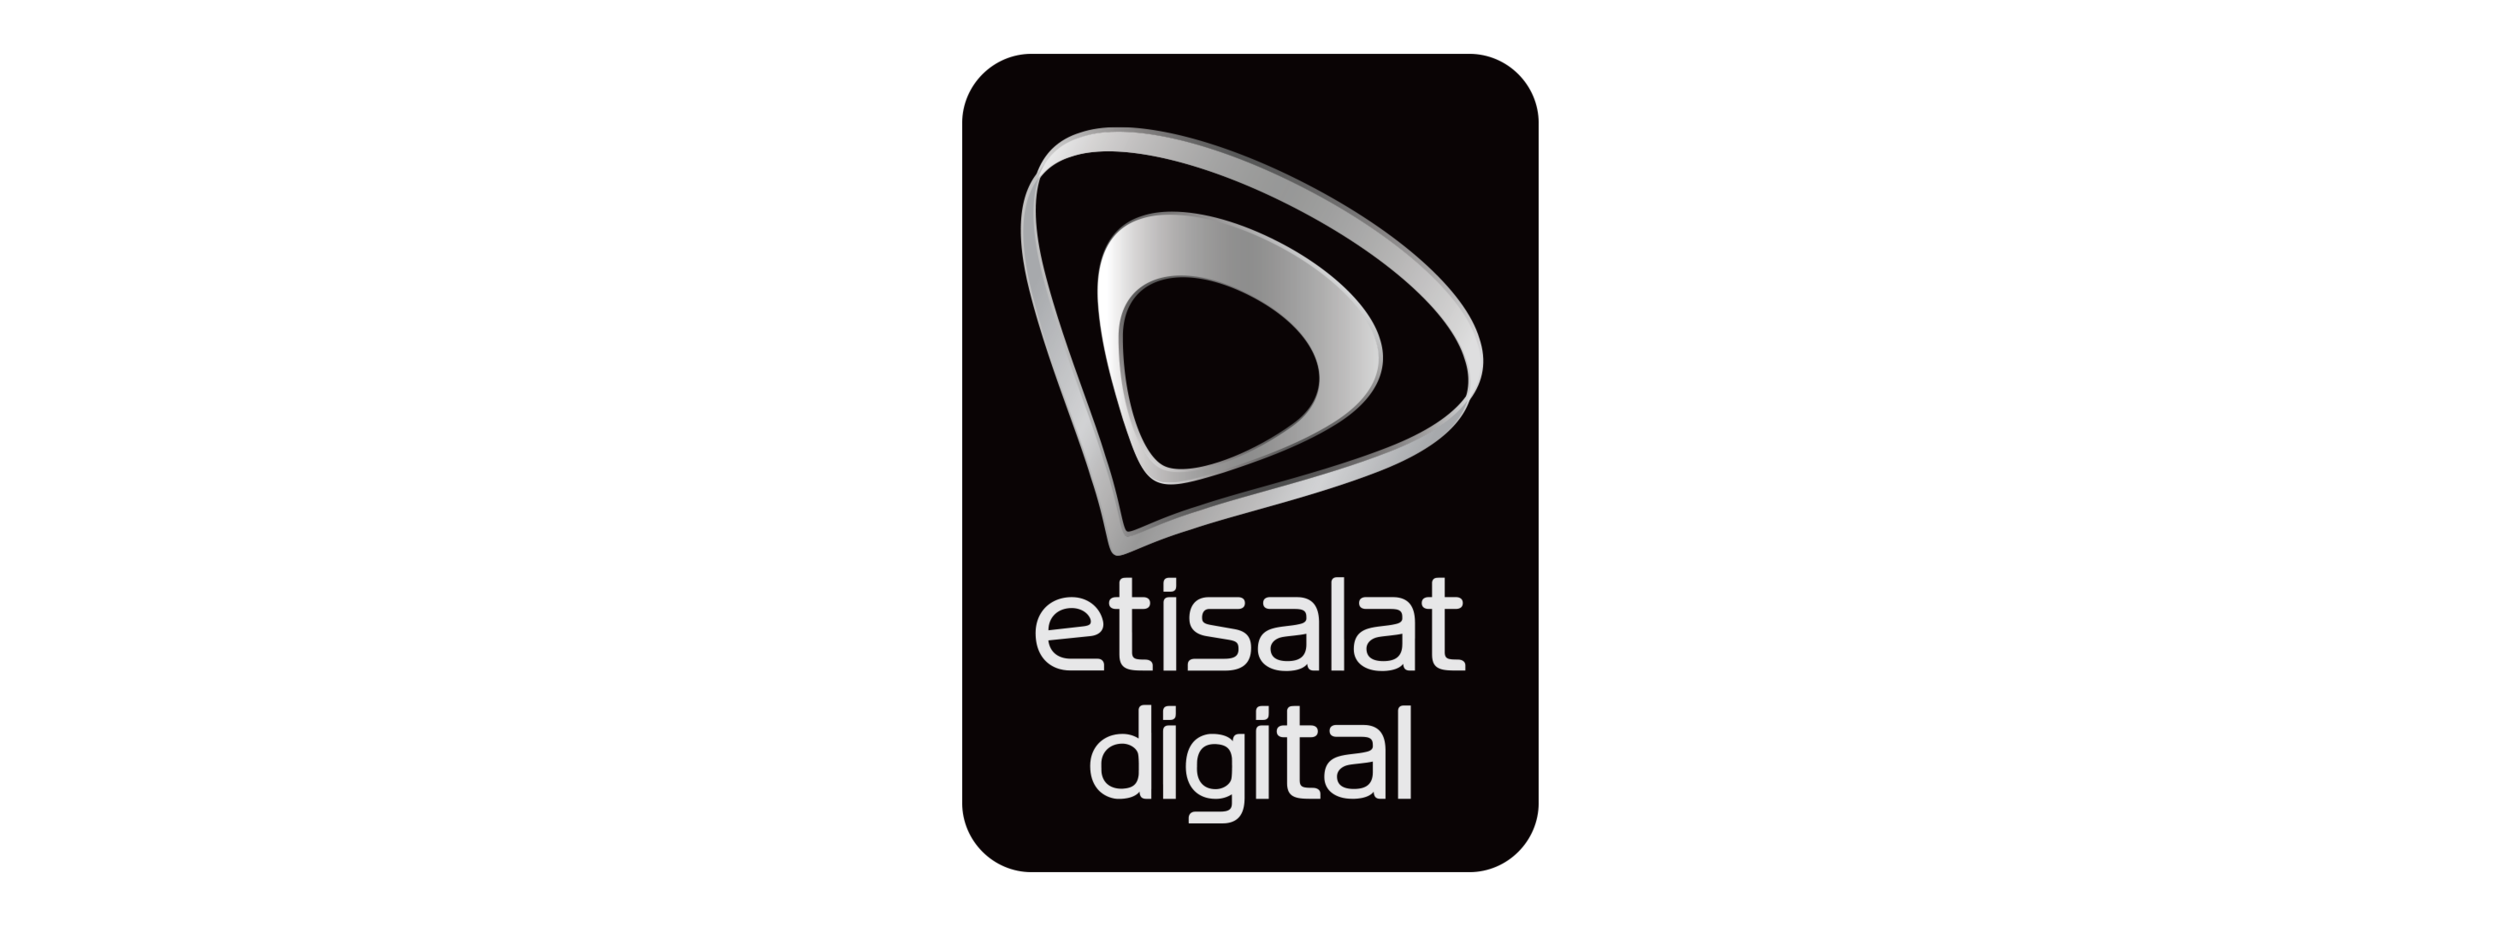 """Etisalat Digital"""" is a business unit of Etisalat helping to drive digital transformation by enabling enterprises and governments become smarter through the use of the latest technologies. The unit focuses on providing digital solutions in various domains including cloud, cyber security, digital marketing, mobile commerce, Internet of Things (IoT) and big data and analytics.    Etisalat Digital has the best industry digital experts, solutions architects, project managers and digital engineers as well as key digital assets and platforms including datacenters, cloud platforms, big data and analytics engines, digital and mobile payments platforms, security operations centers, Internet of Things Platforms and command and control centers.    Etisalat Digital unique value lies in combining the scale, strength and robust network of the leading regional telco with the agility, skills and platforms of a digital player. It is best positioned to provide end-to-end digital vertical positions to enable smarter education, healthcare, city, government, smarter transportation, resource management and cashless economy.    For more information, visit  etisalatdigital.ae"""